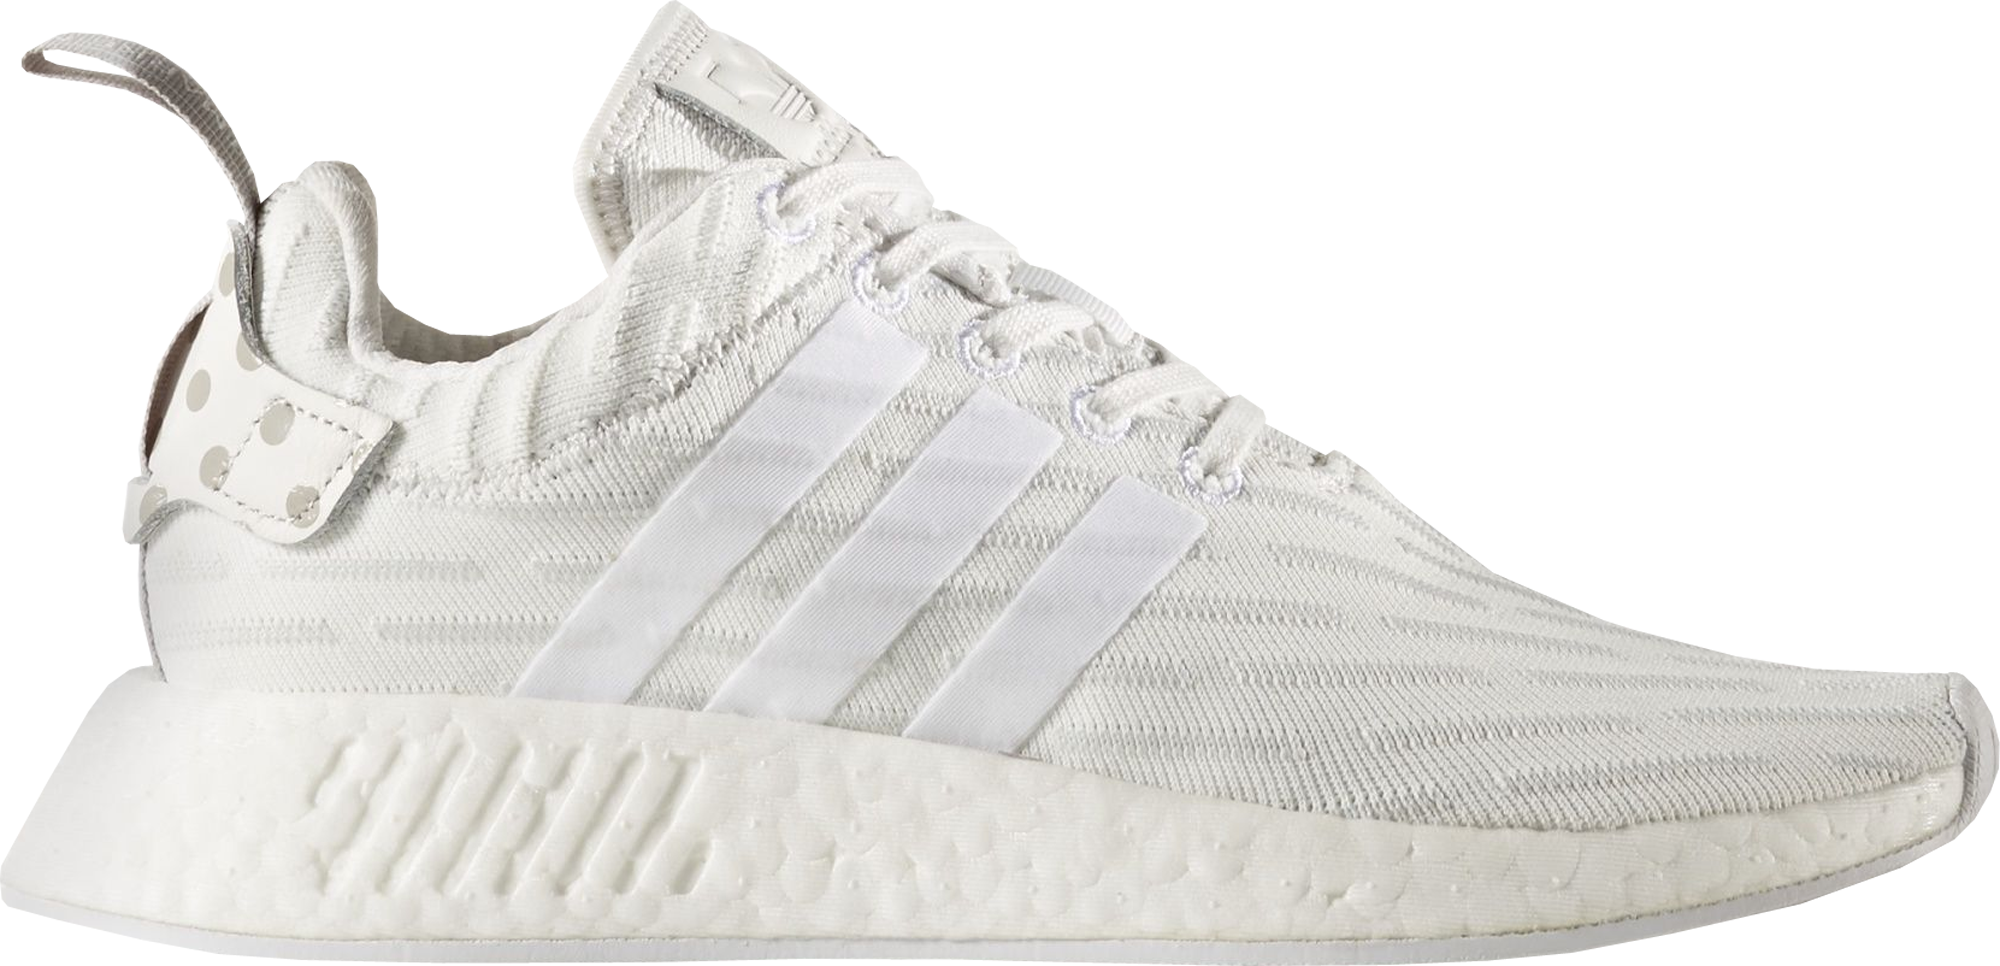 adidas NMD R2 Vintage White (W) - BY2245